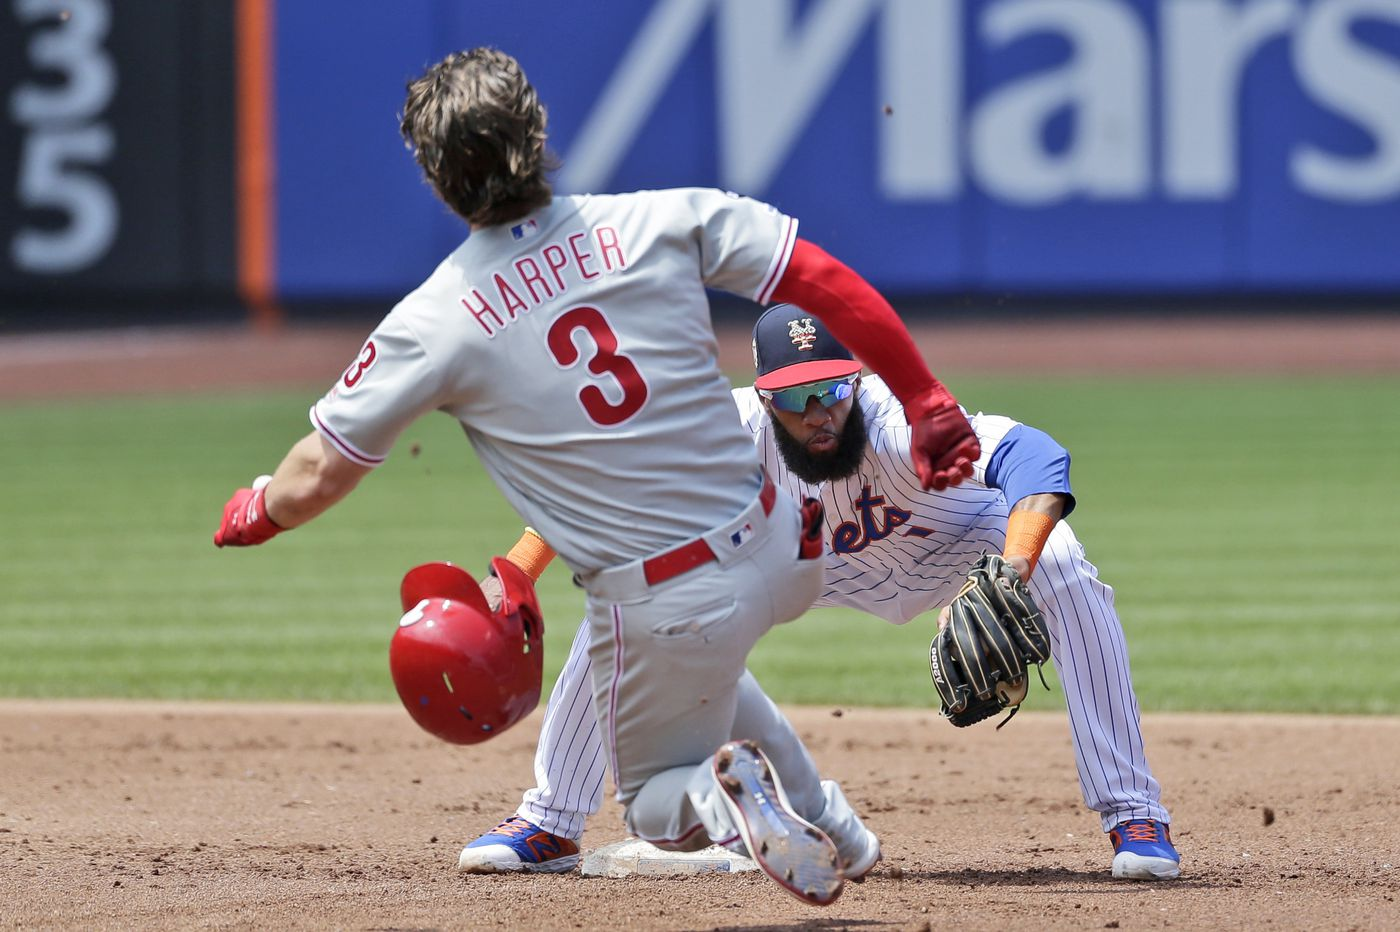 Gabe Kapler: Rival Mets' recent surge should be proof that Phillies can get hot, too